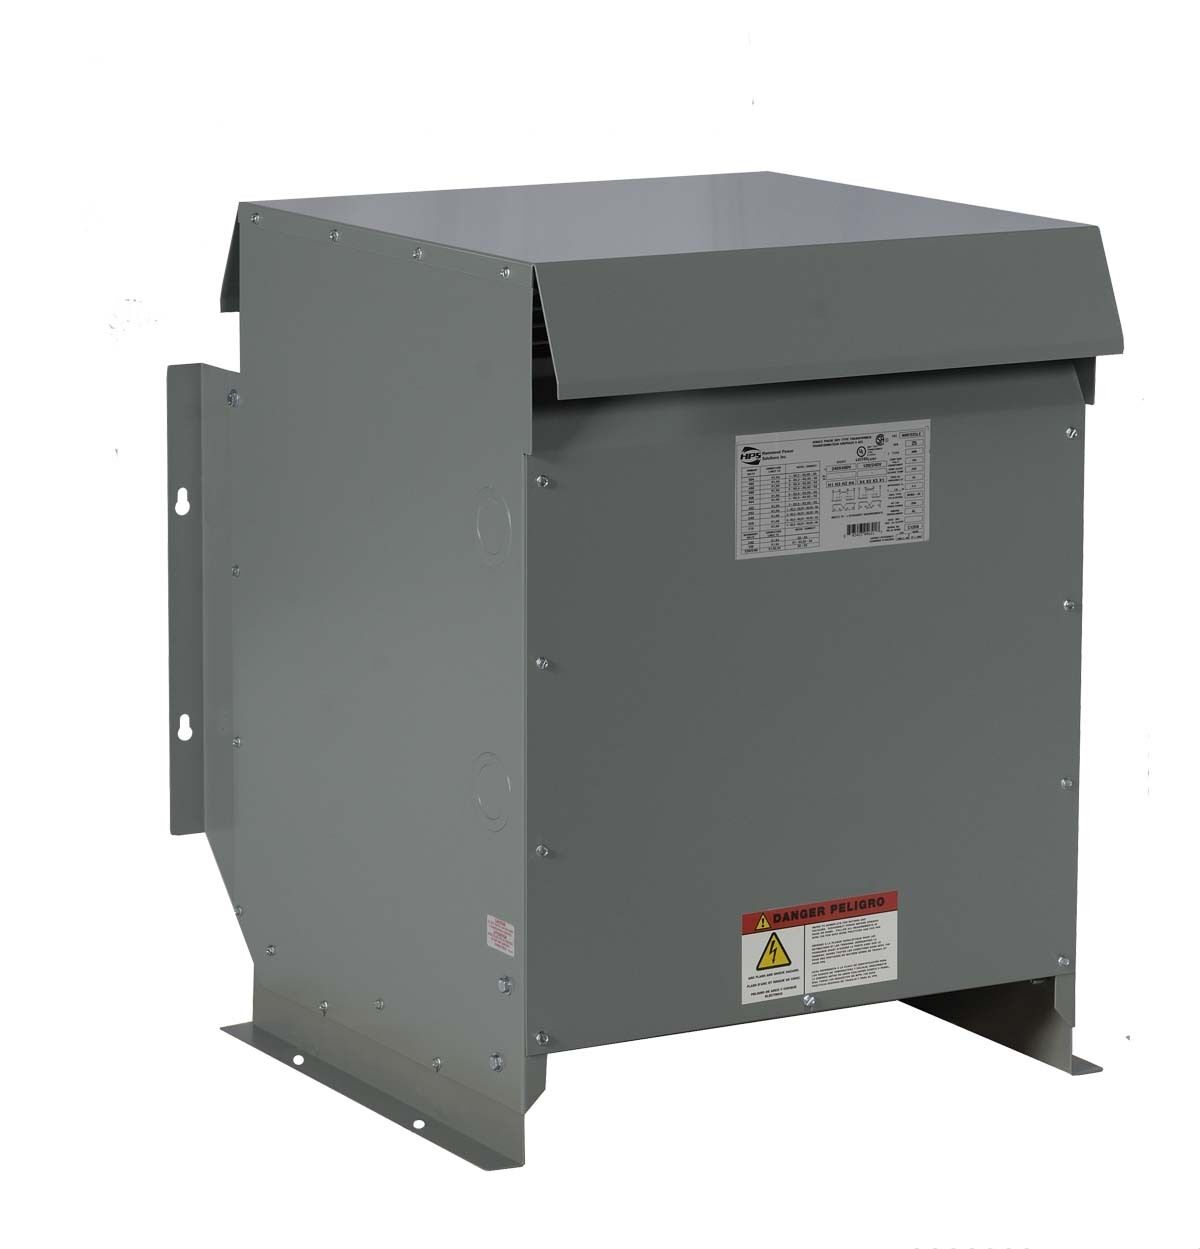 15kva Dry Type Transformer 480 208y 120 Volt Step Down 3 Phase New 3r